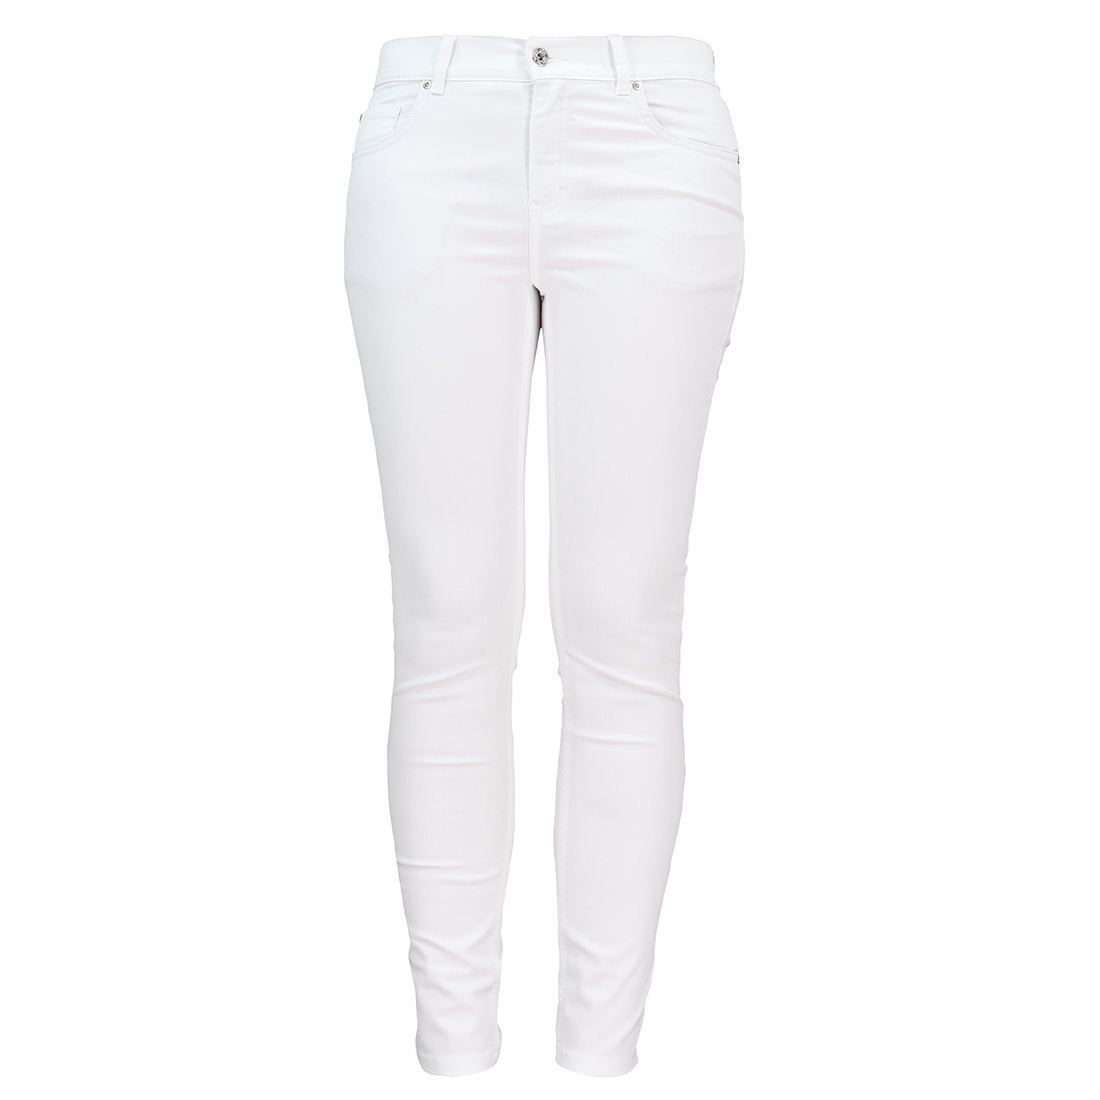 Smit Mode:  Angels jeans 332120030 in het Wit